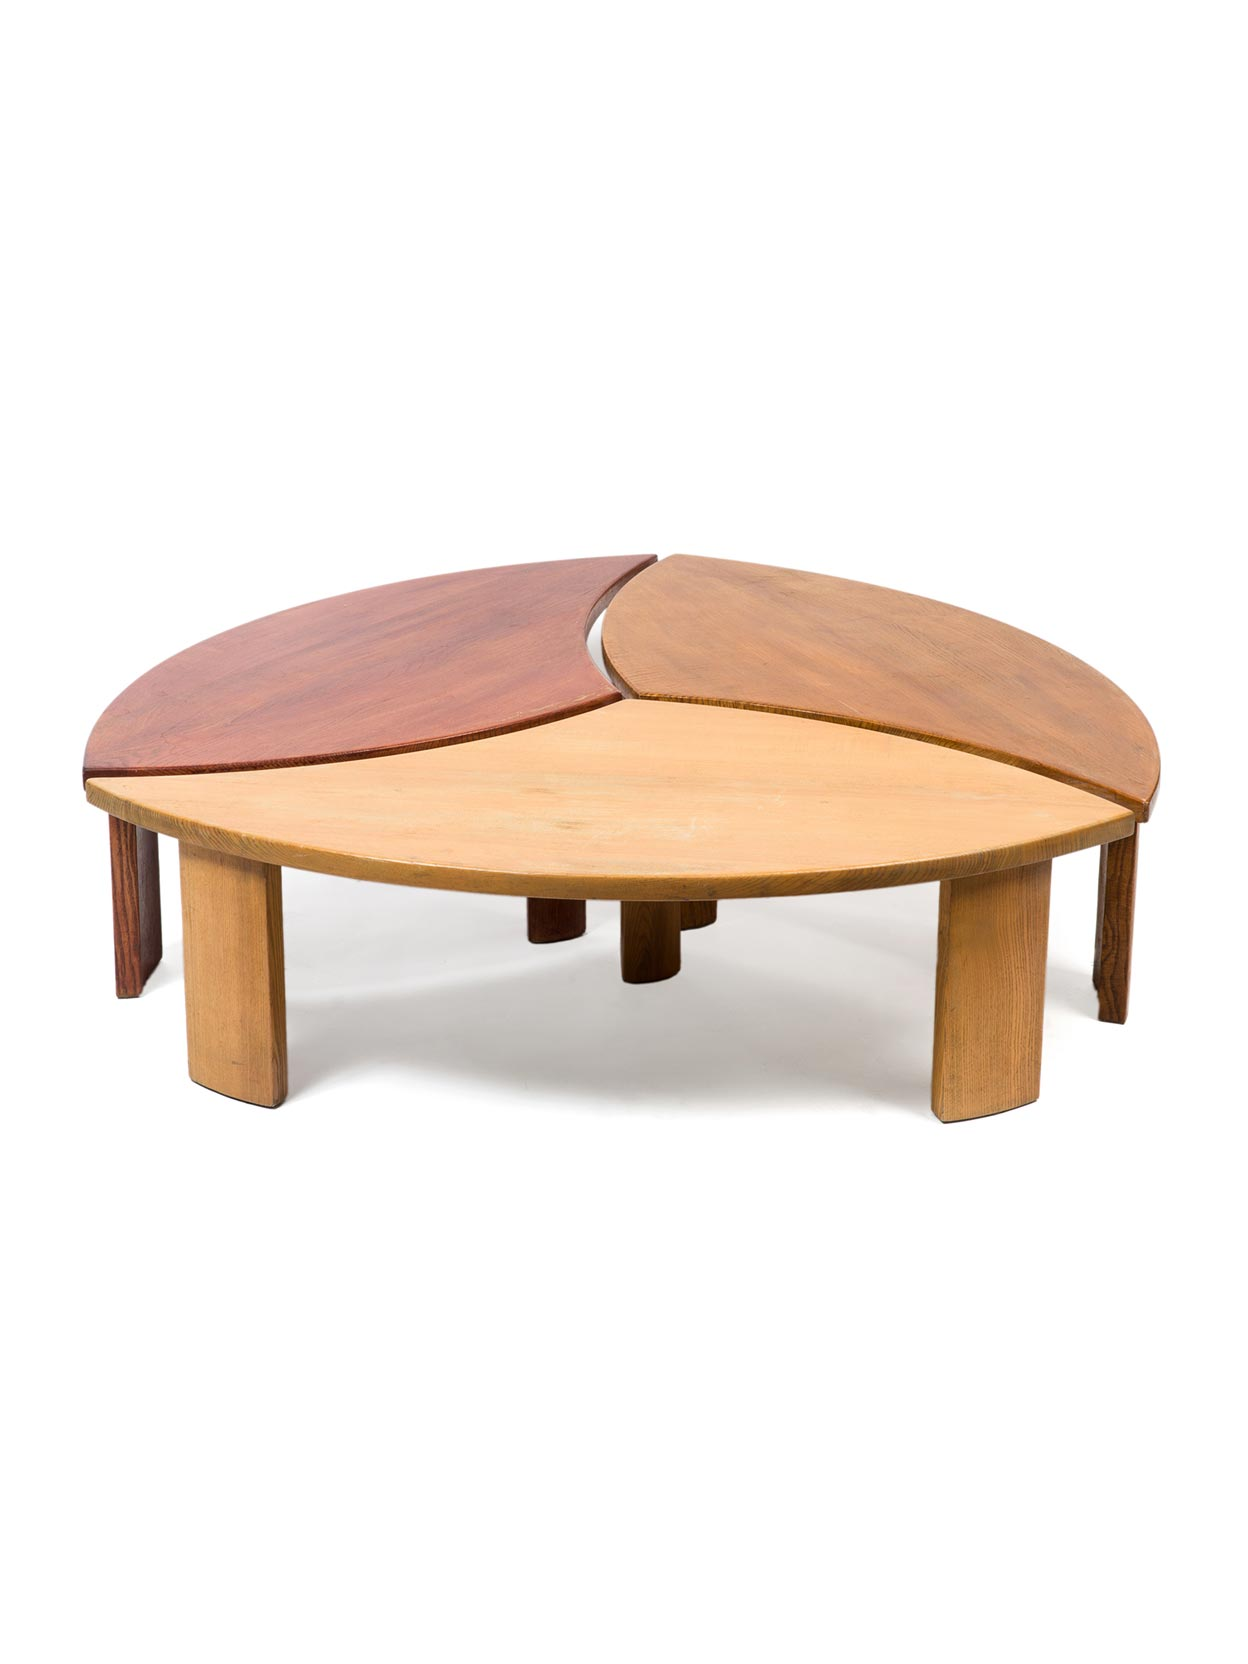 Chapo Table VINTAGE0097